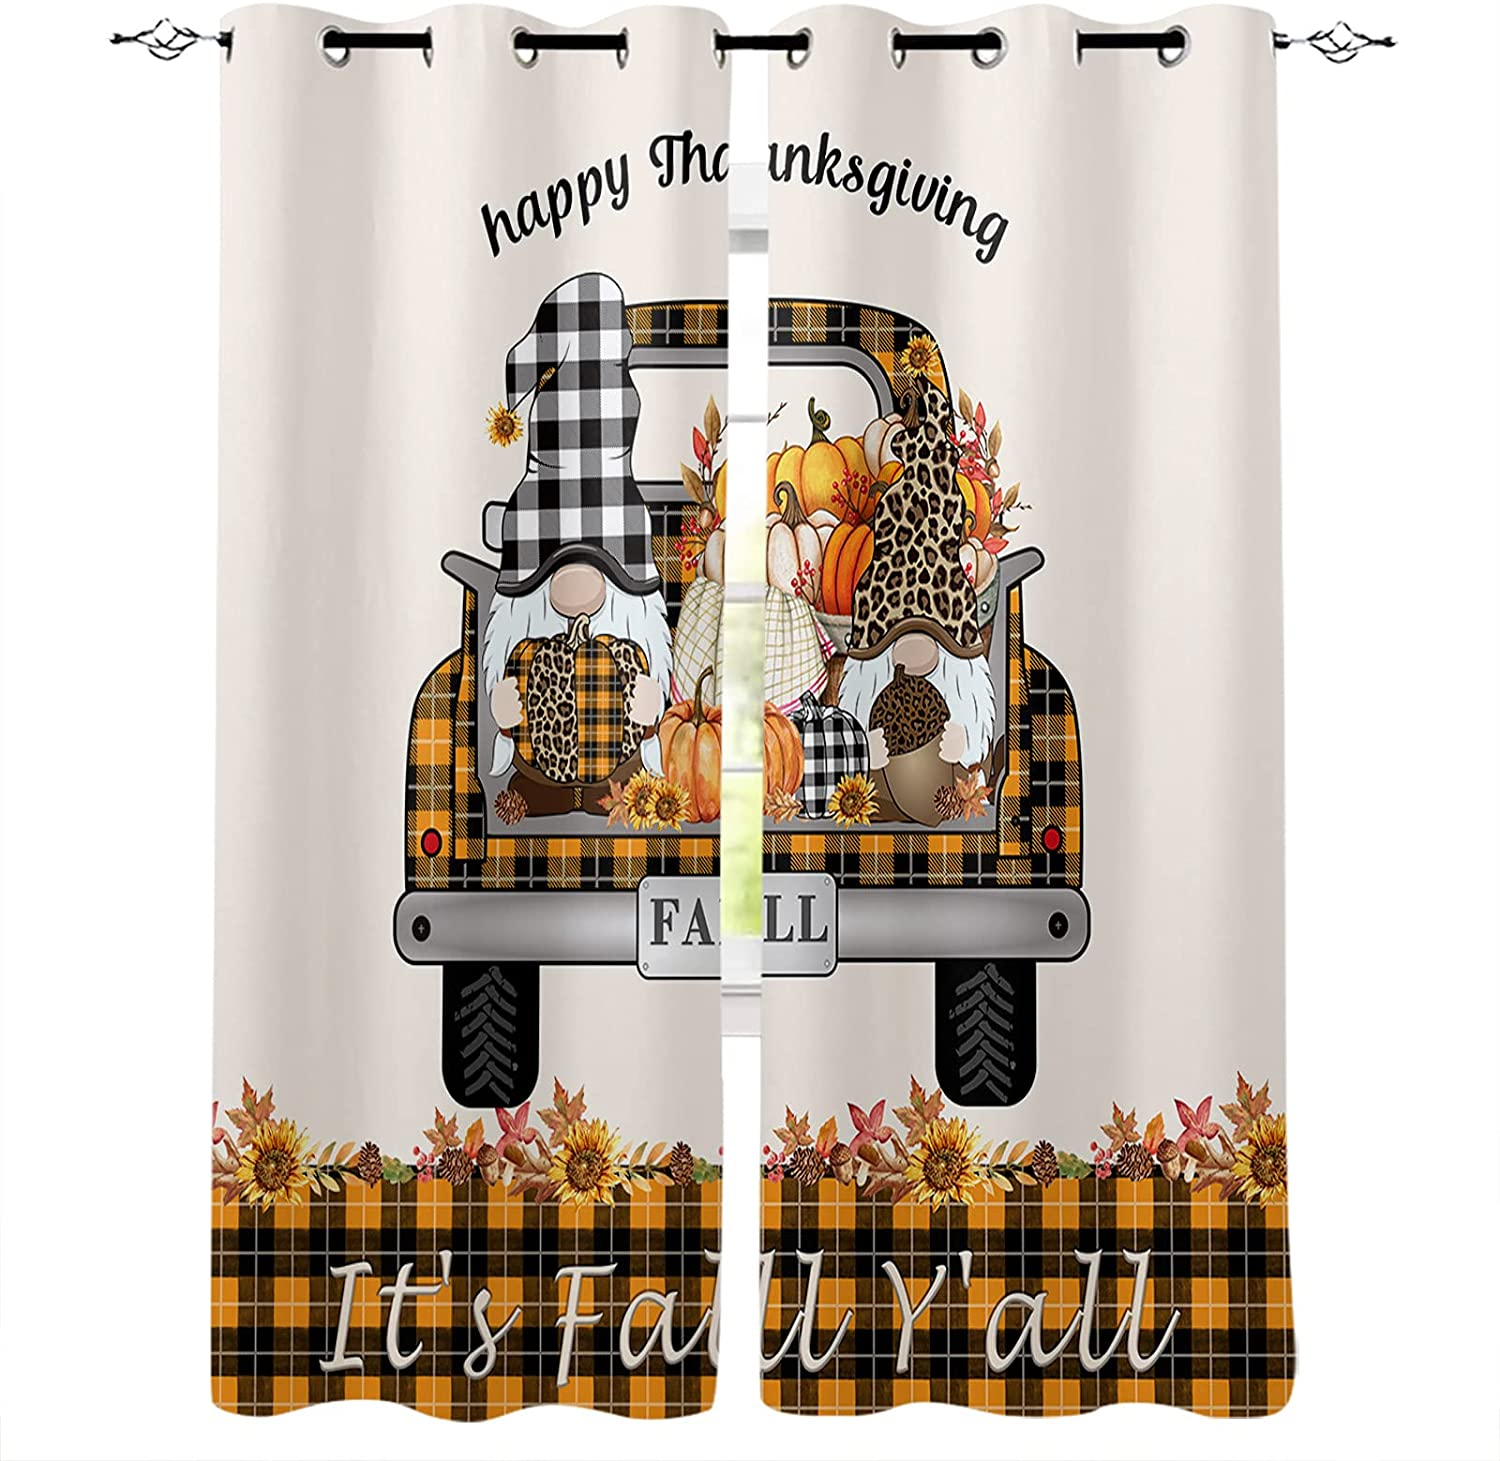 2 Indianapolis Mall Panel Window Drapes for Day Thanksgiving Cafe Munchki Direct sale of manufacturer Kitchen